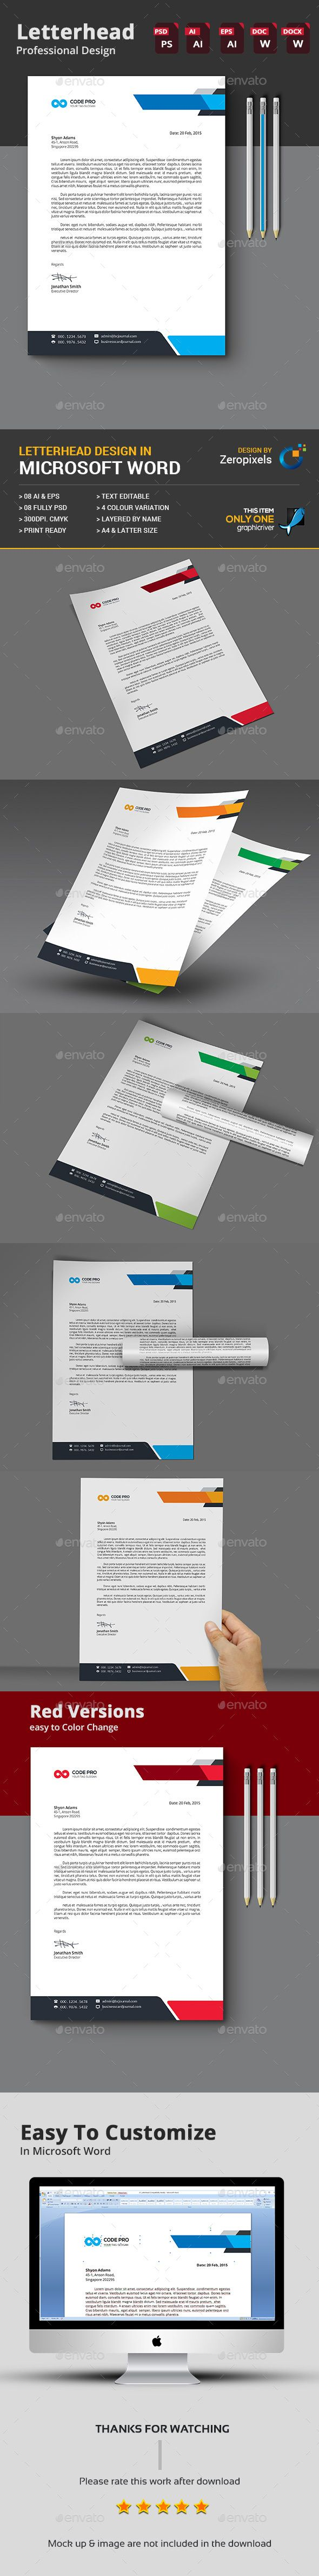 99 best letterhead images on pinterest design patterns design letterhead design template psd vector eps ai illustrator ms word spiritdancerdesigns